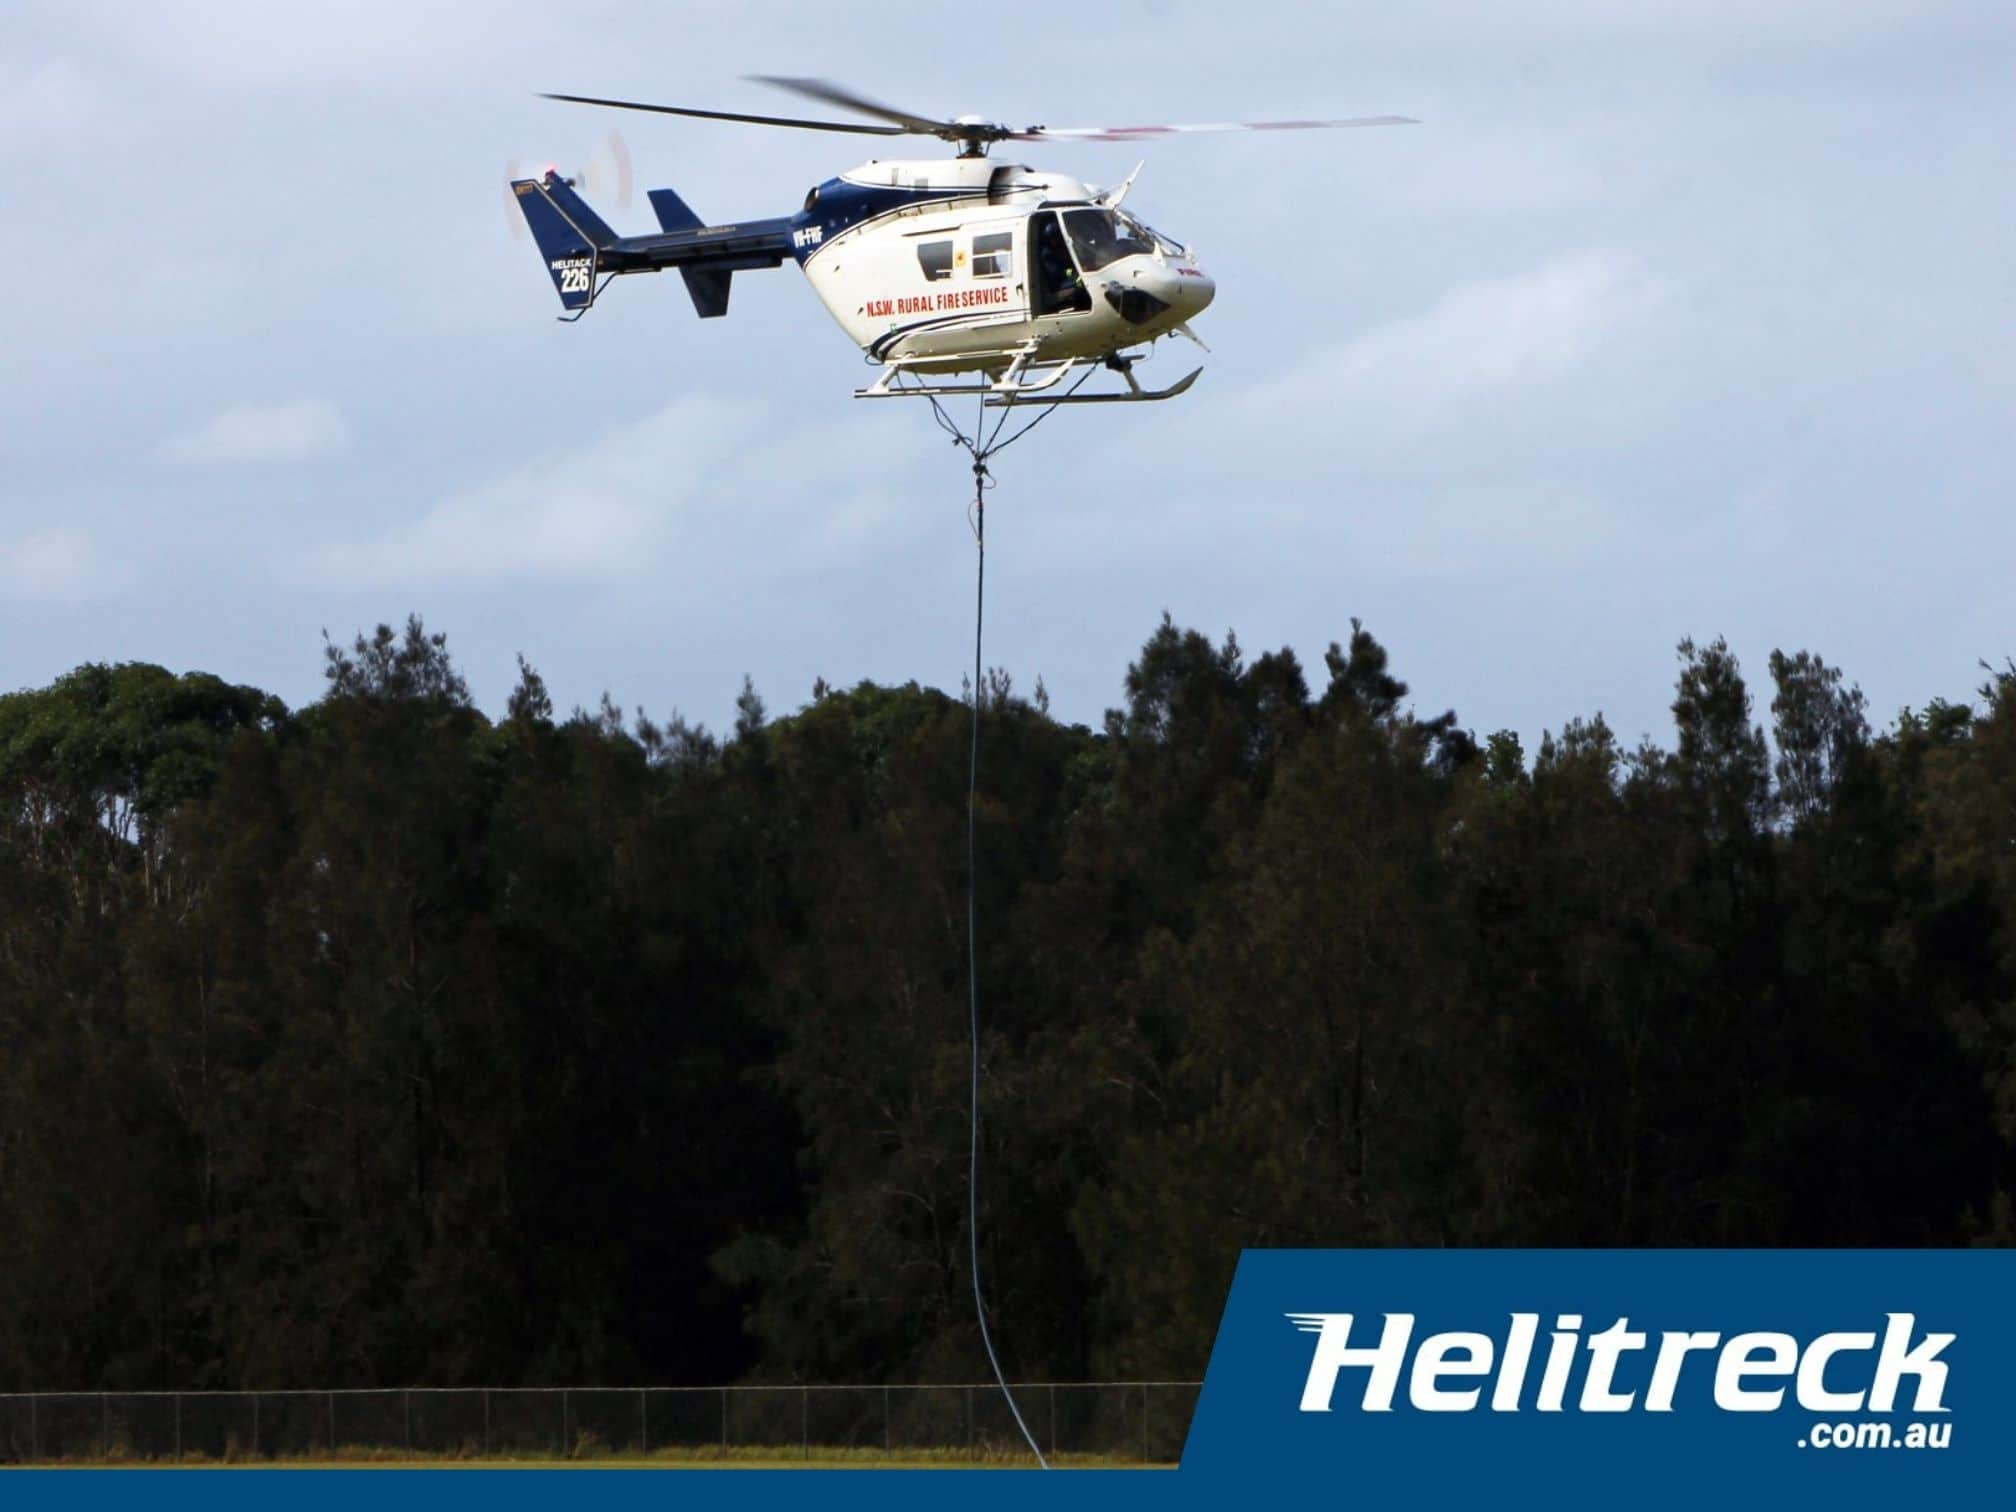 Helicopter-Longlines-Helitreck